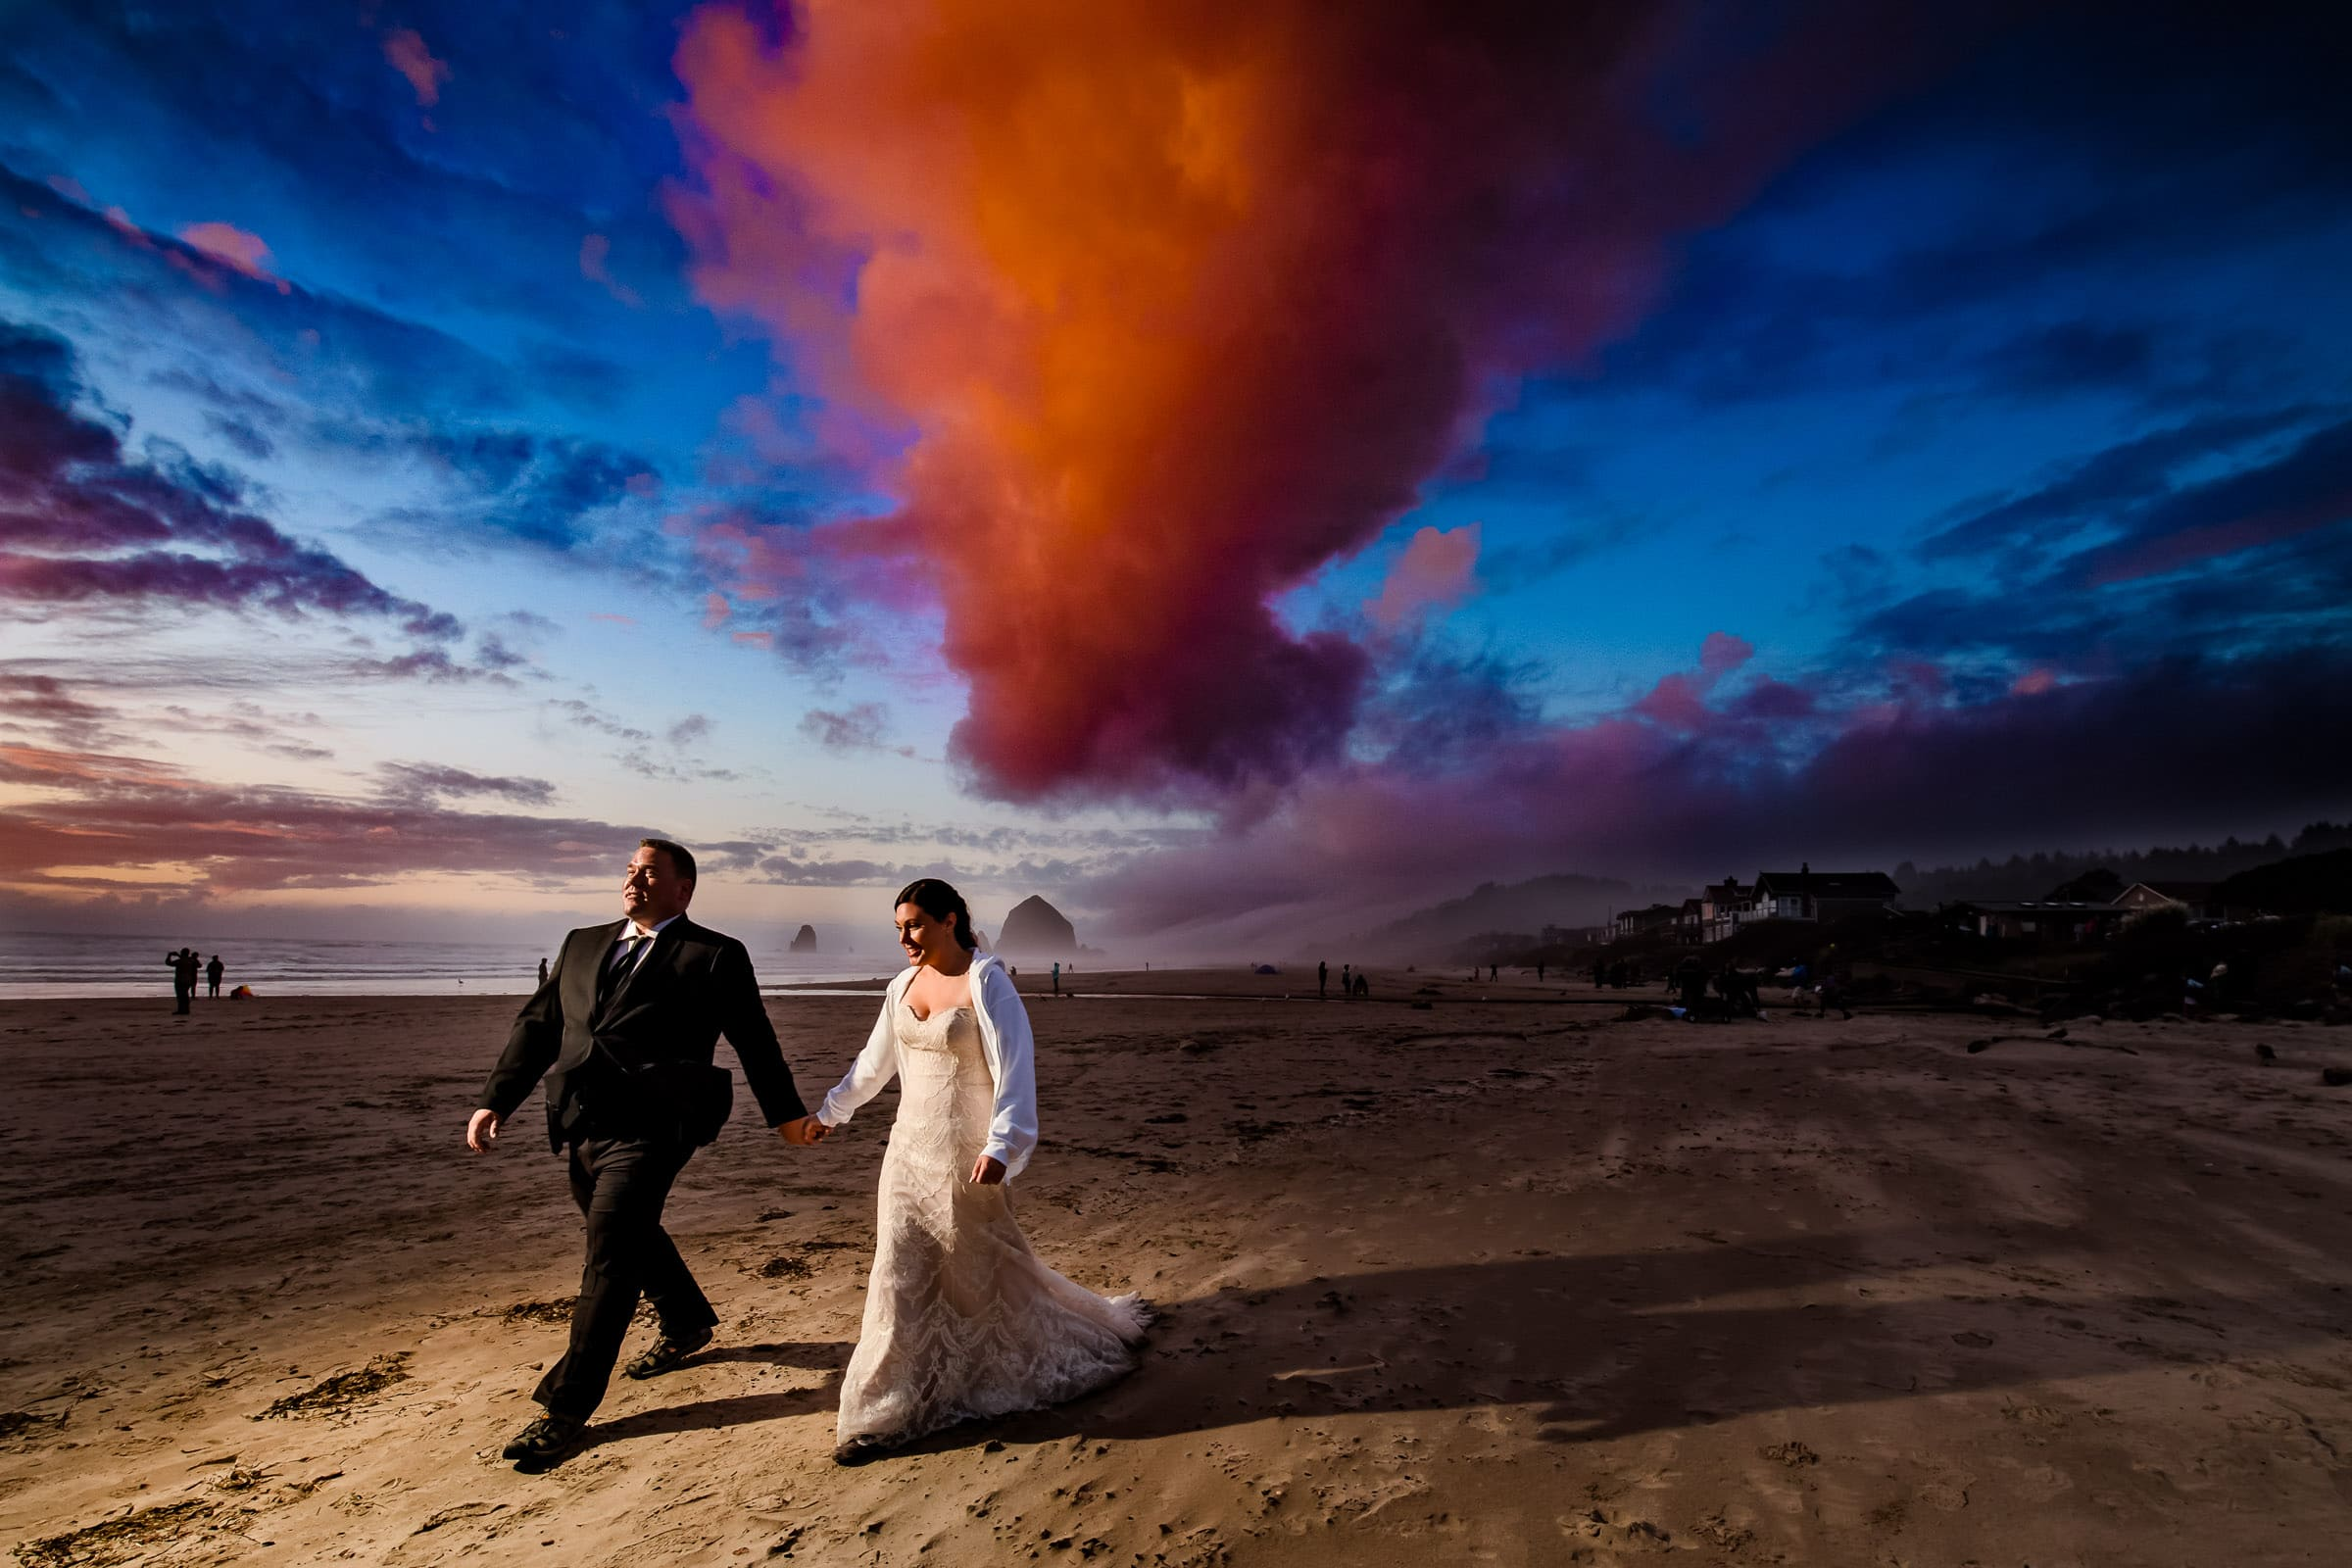 Cannon Beach Elopement of bride and groom walking on beach with colorful sunset in Oregon for their elopement